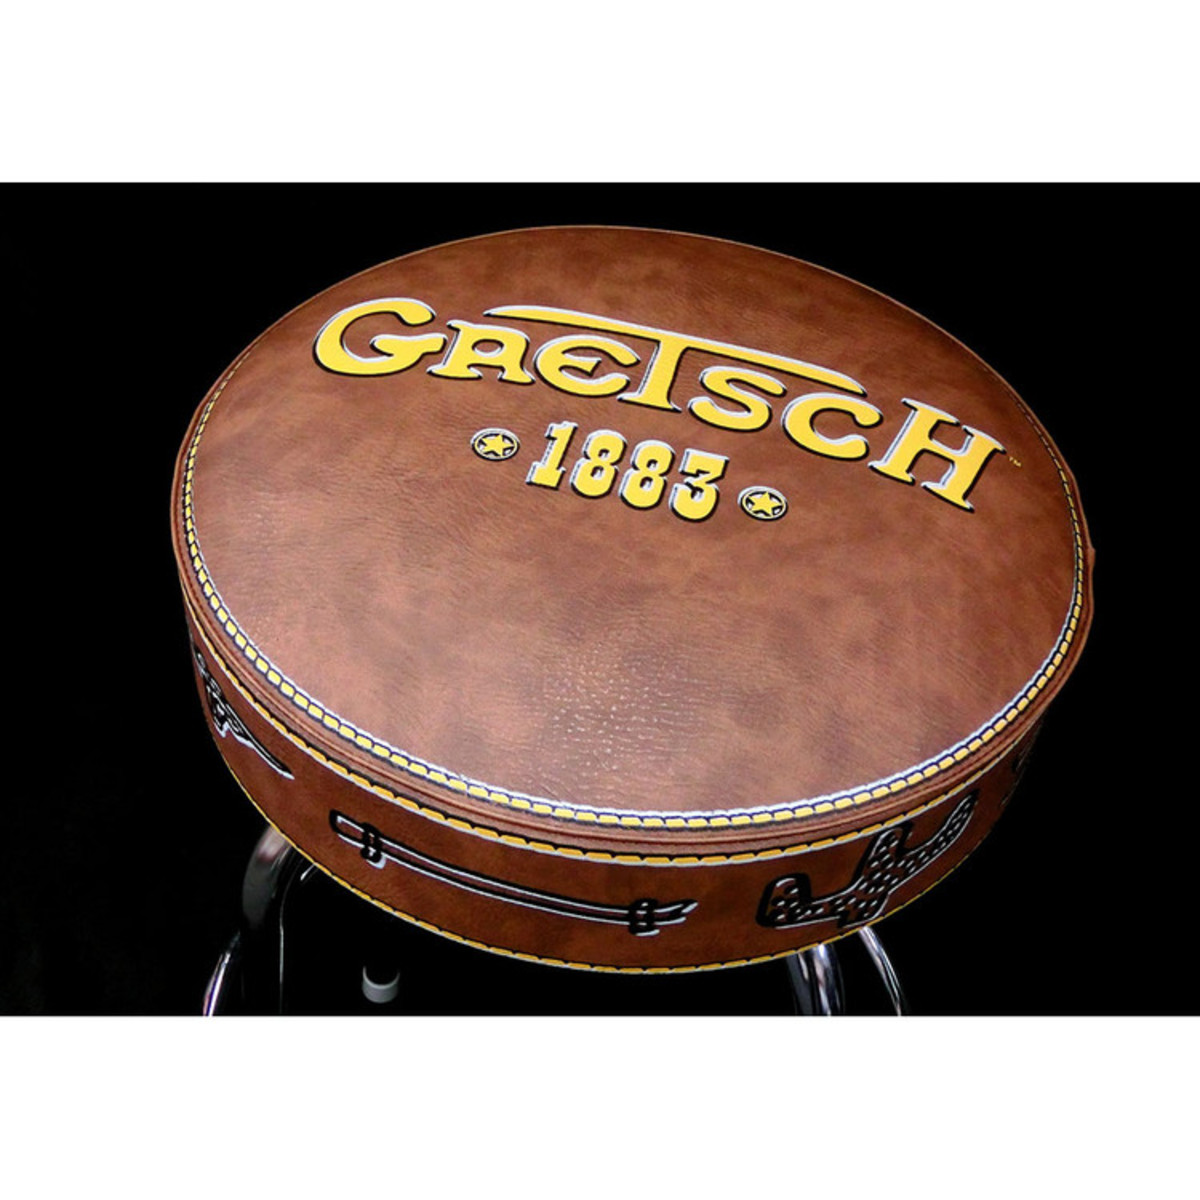 Gretsch 1883 24 Inch Bar Stool At Gear4music Com